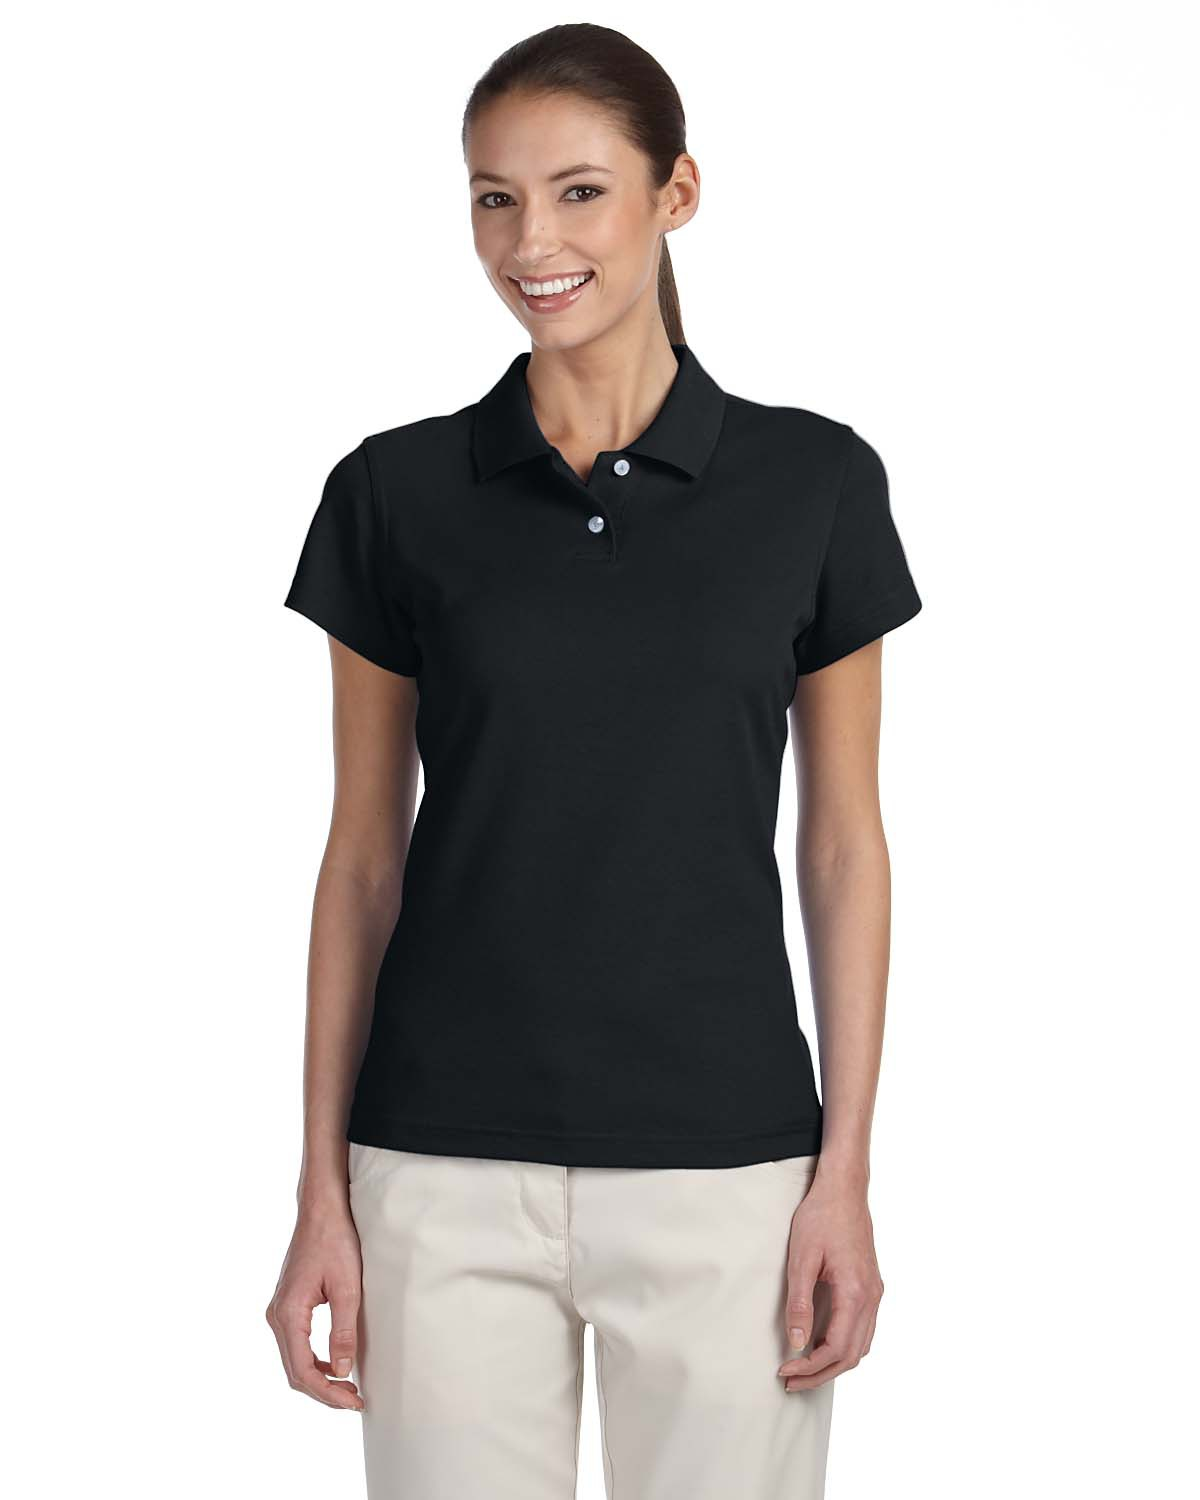 ADIDAS A85 - Ladies' ClimaLite Pique Polo